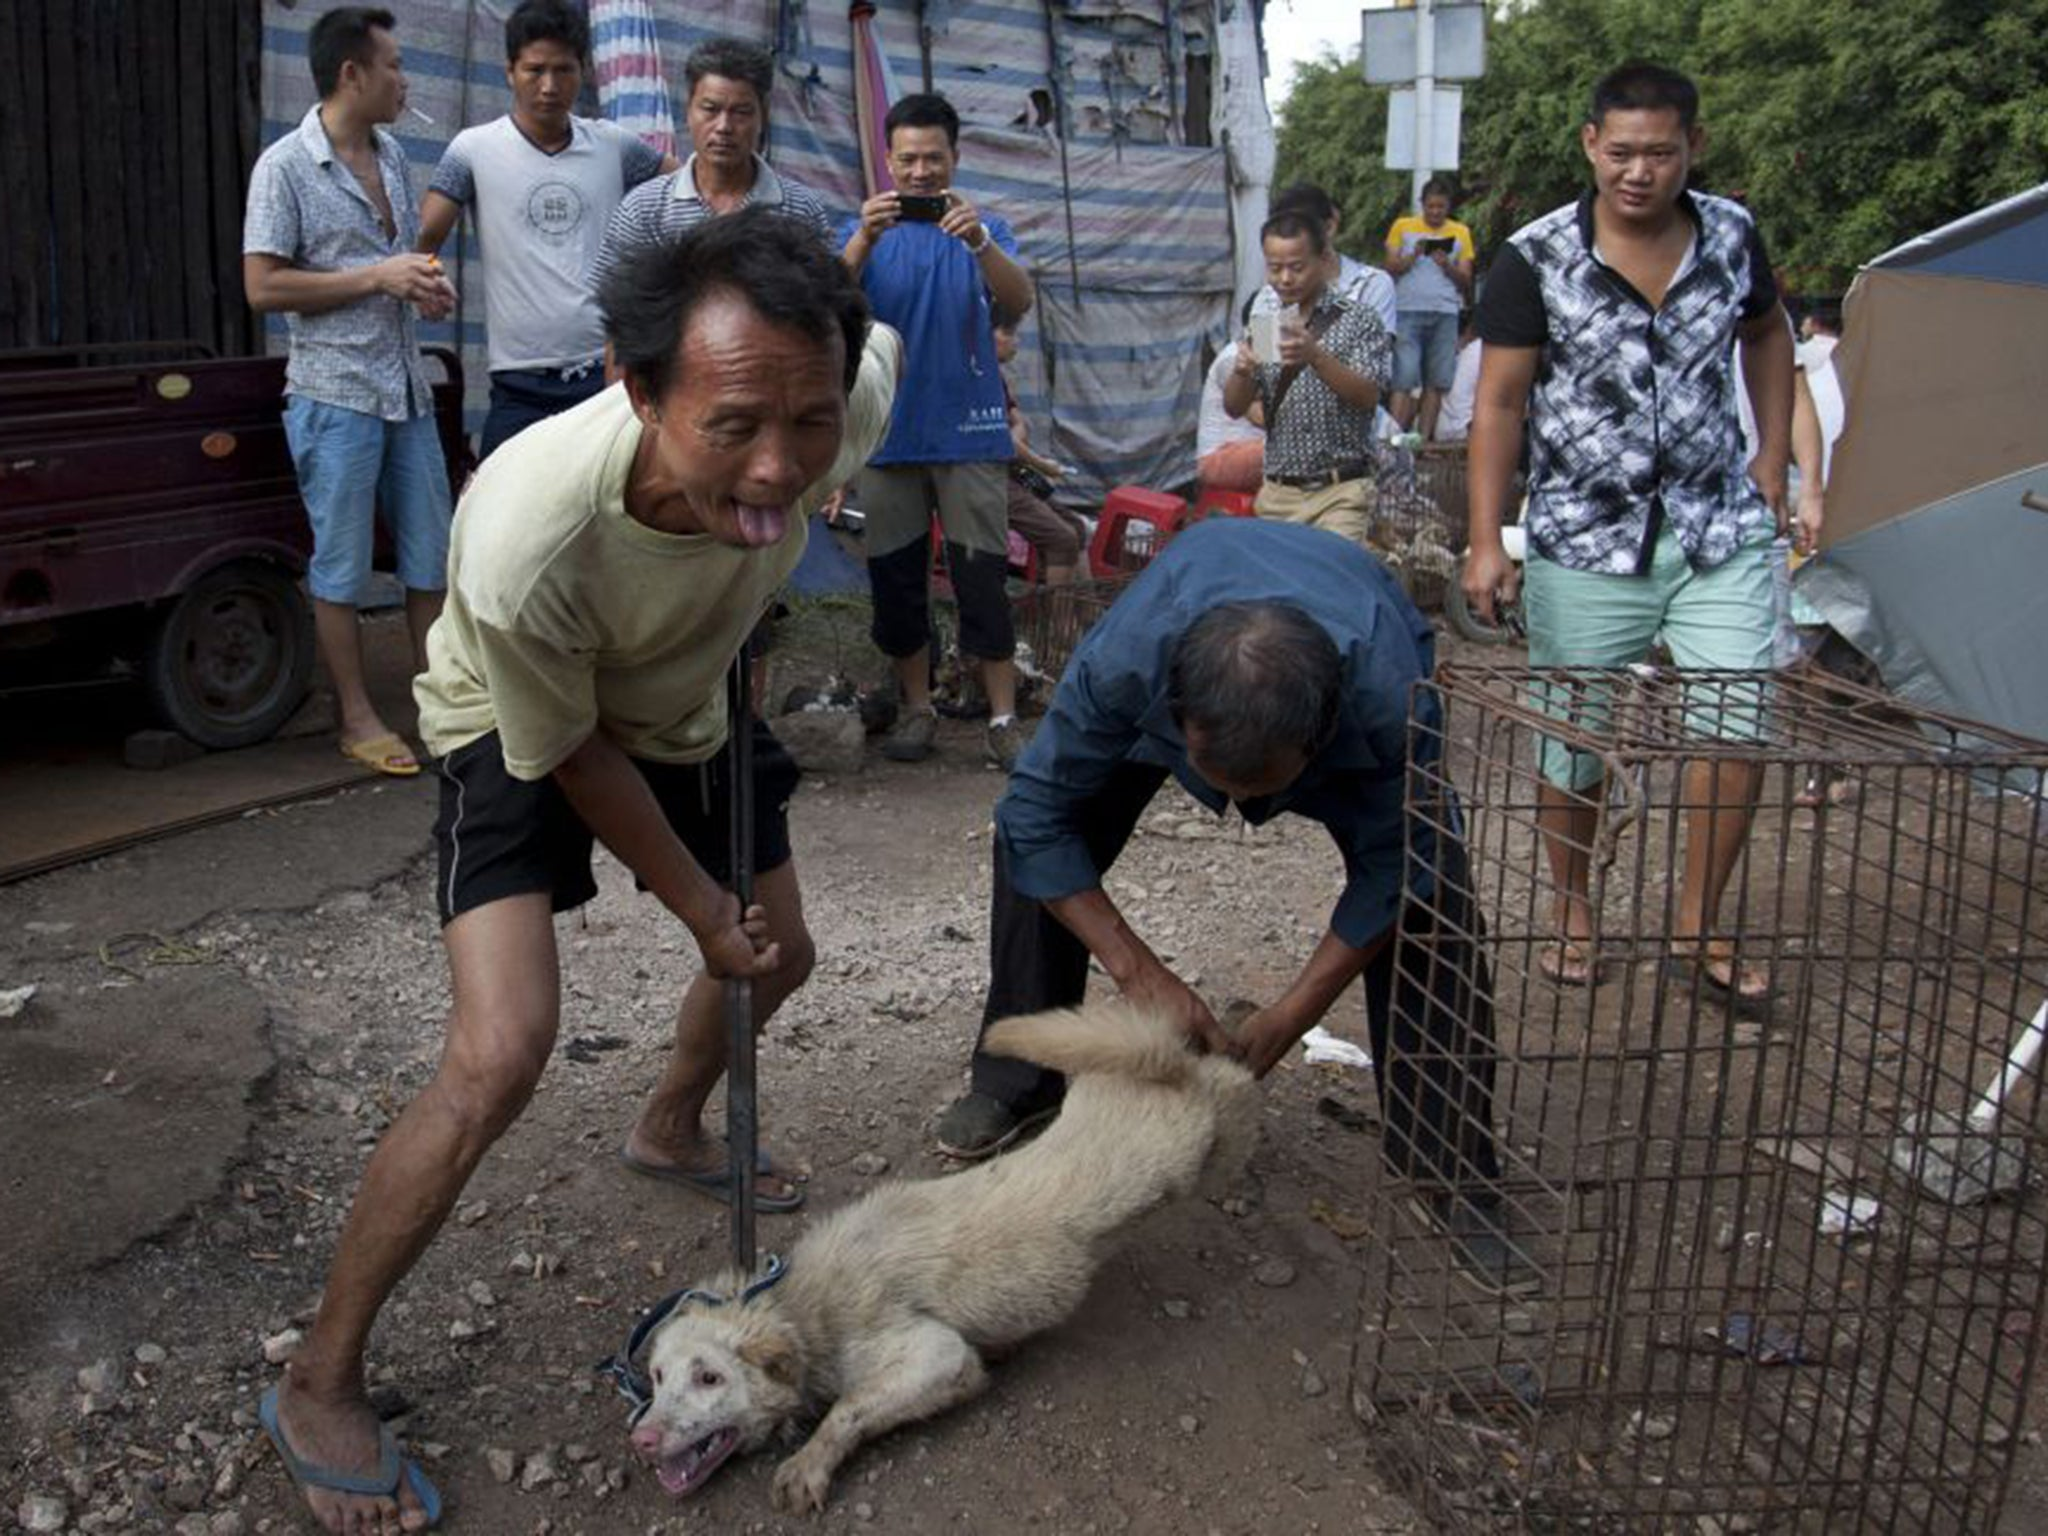 yulin dog meat festival 2016 what is it when and where